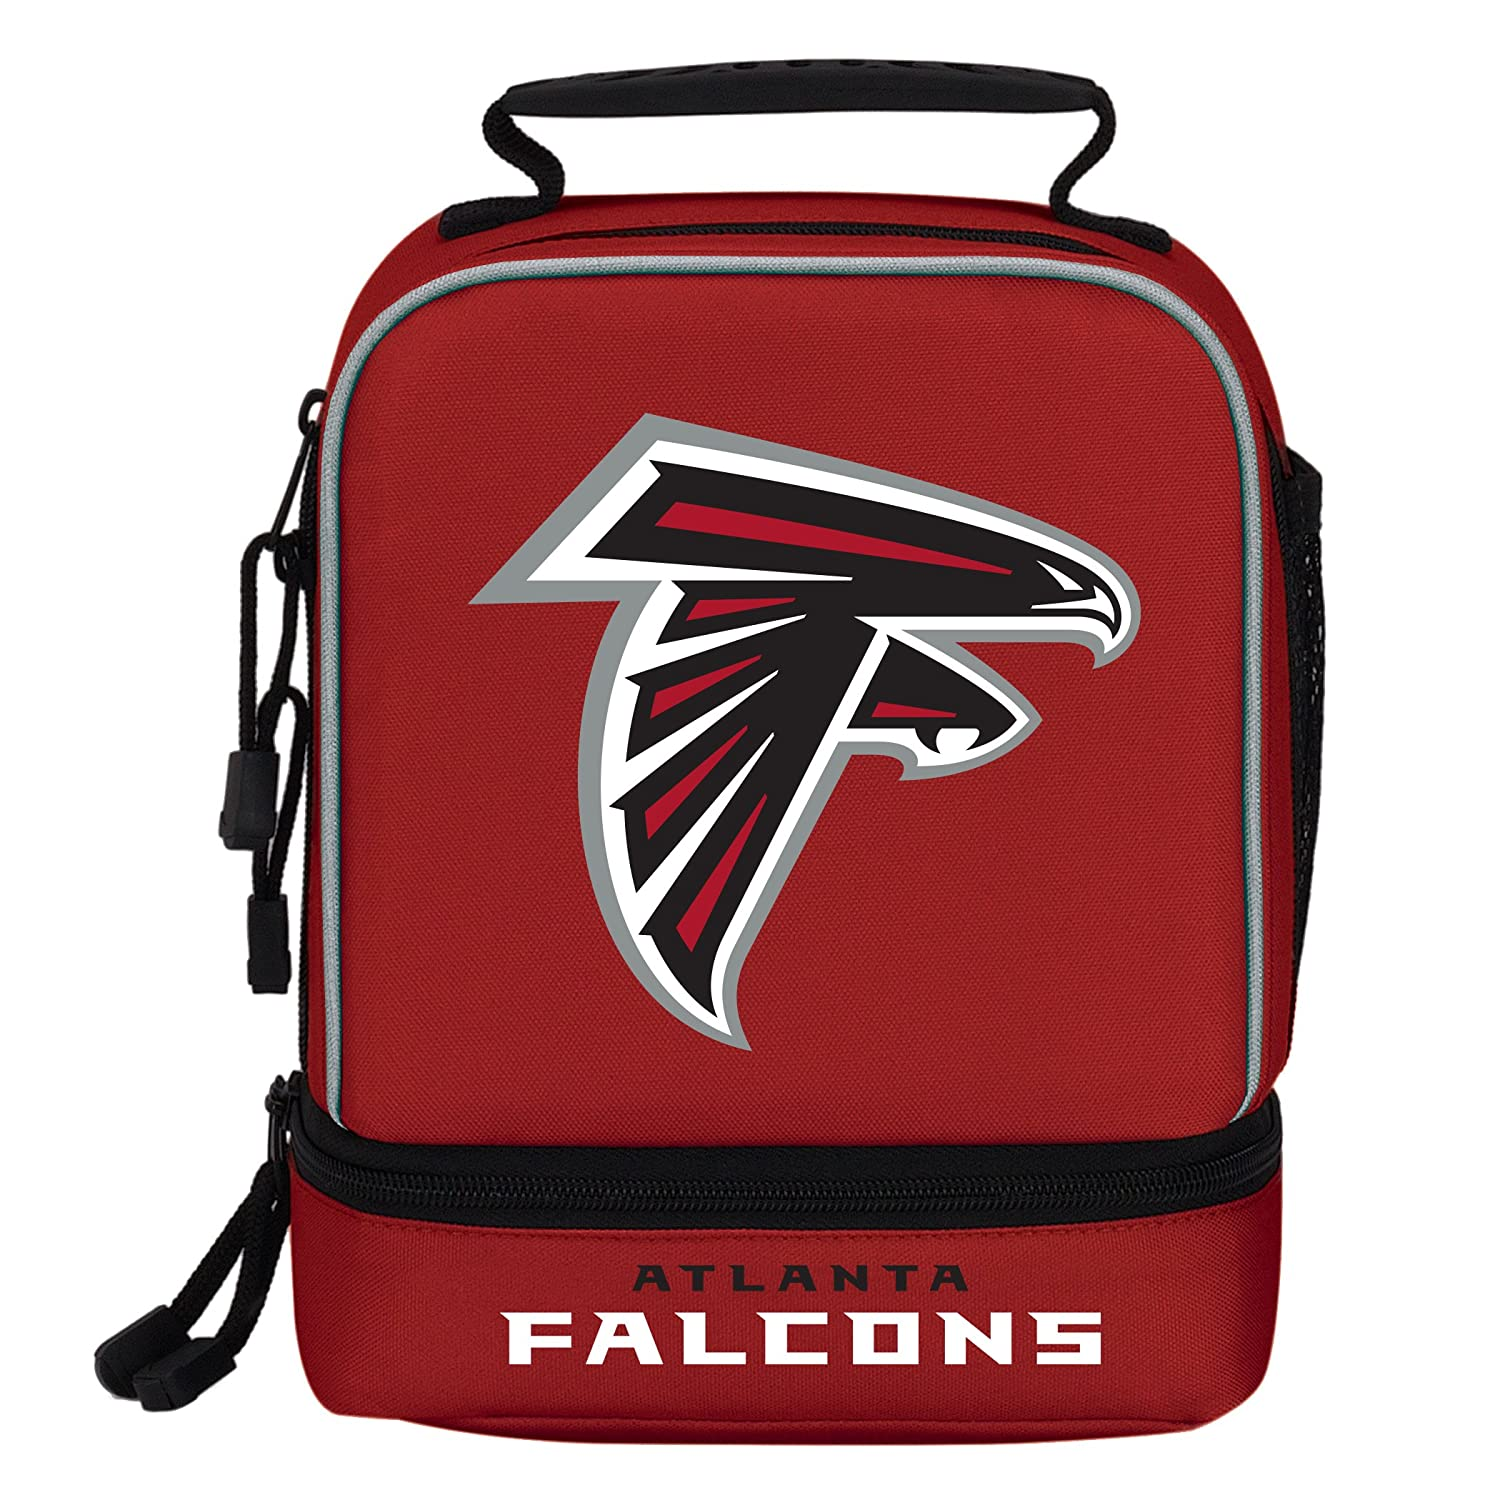 Officially Licensed NFL Spark Lunch Kit 9 x 4.5 x 7.25 Multi Color